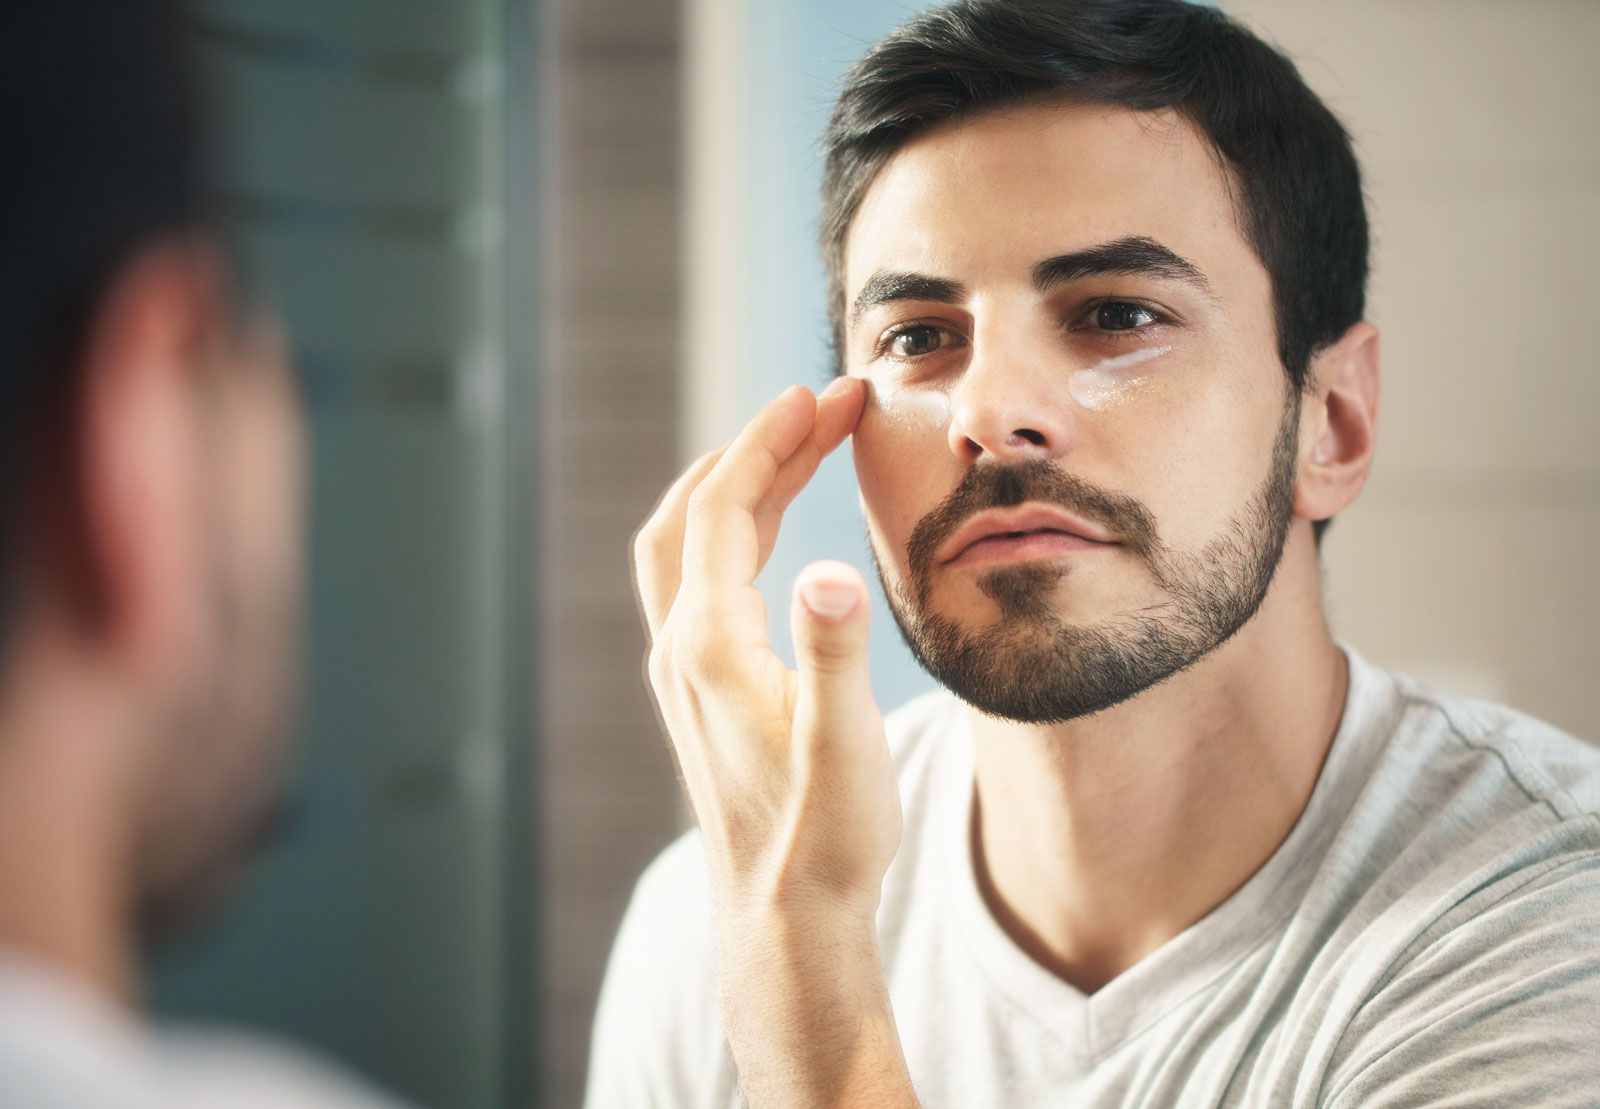 15 Best Eye Creams For Men 2020 How To Get Rid Of Dark Circles